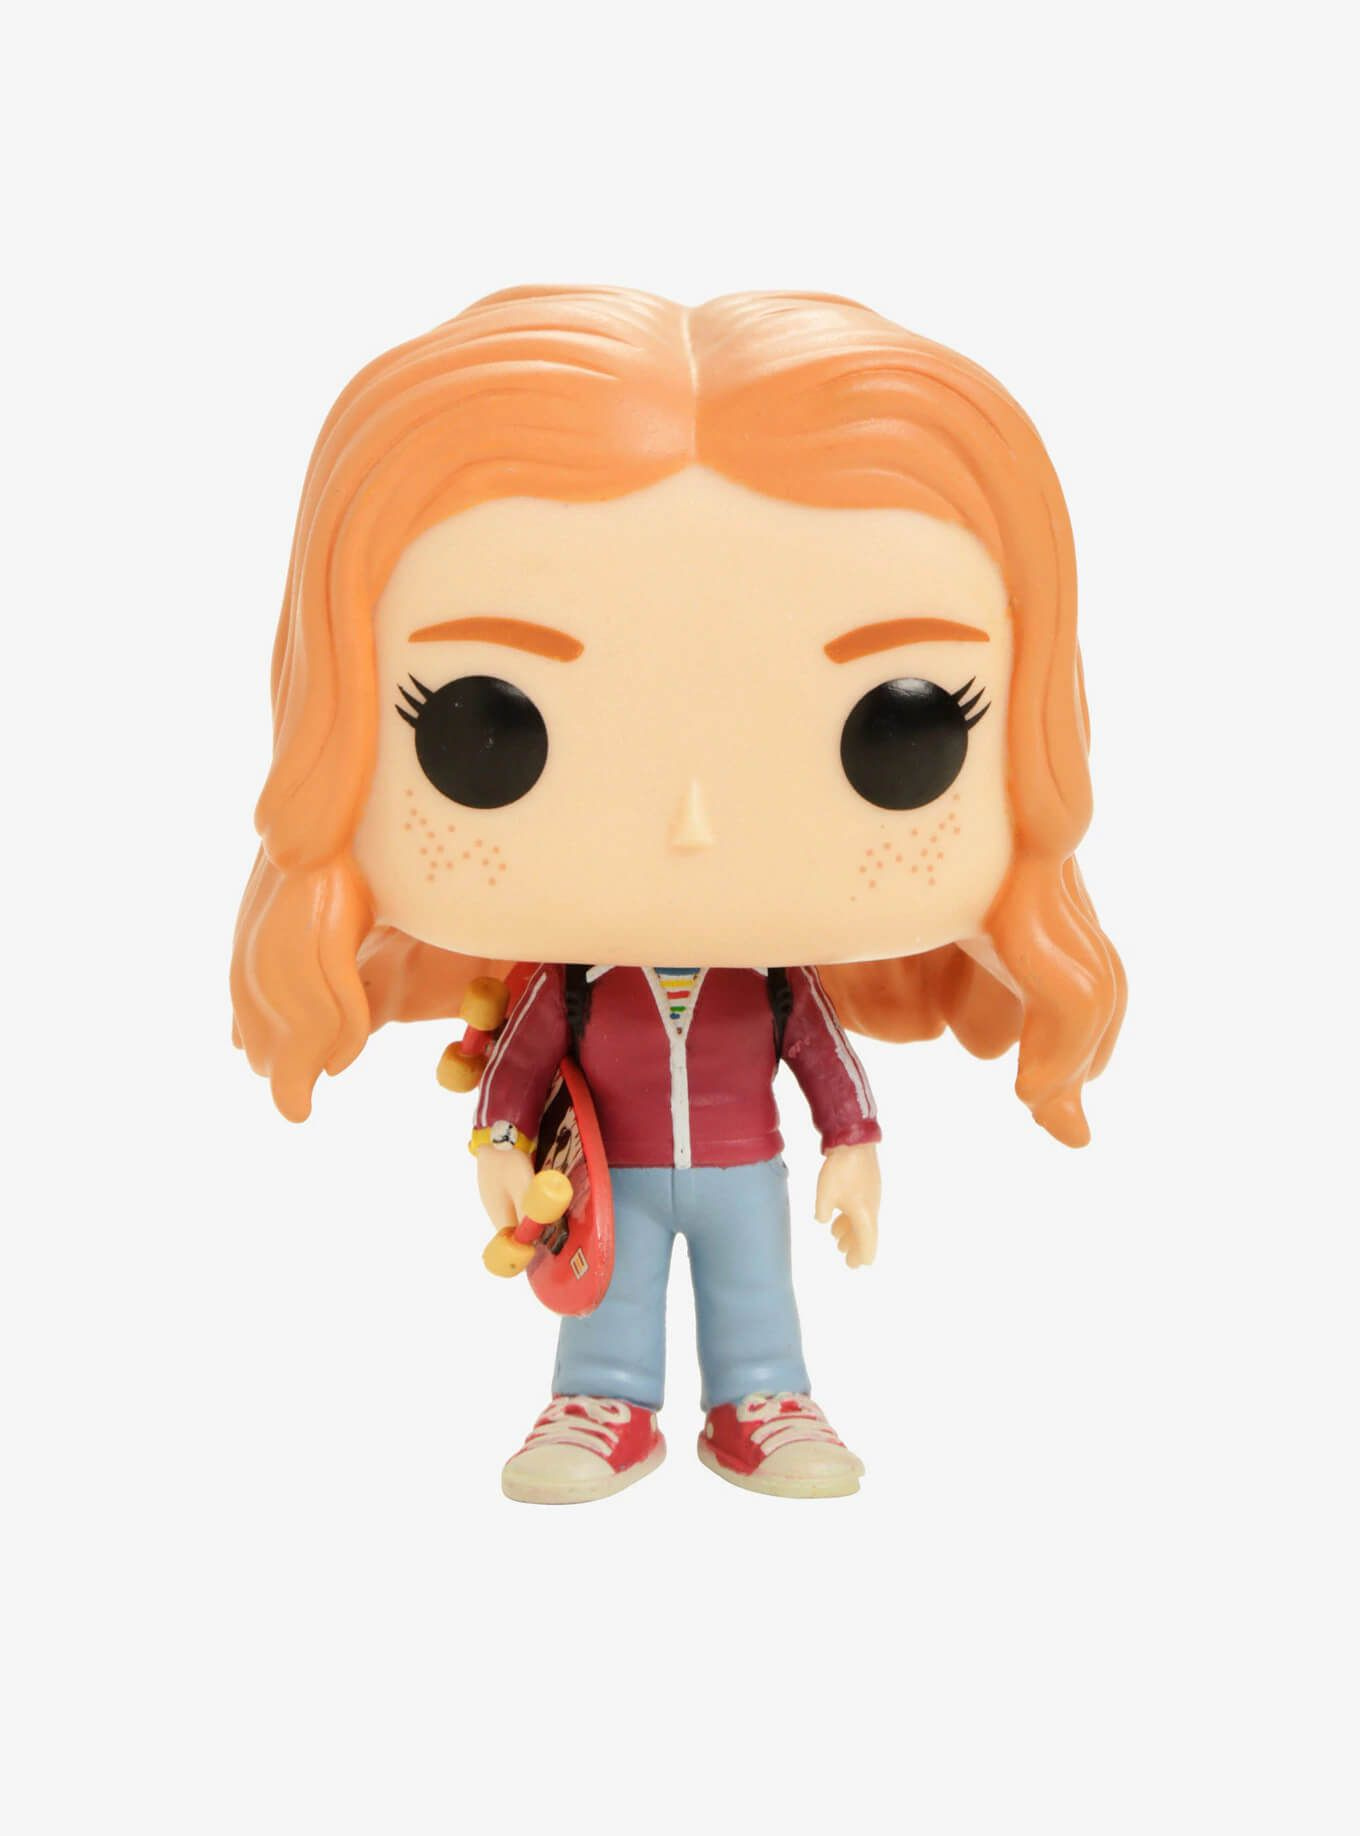 Max #551 - Stranger Things - Funko Pop! Television